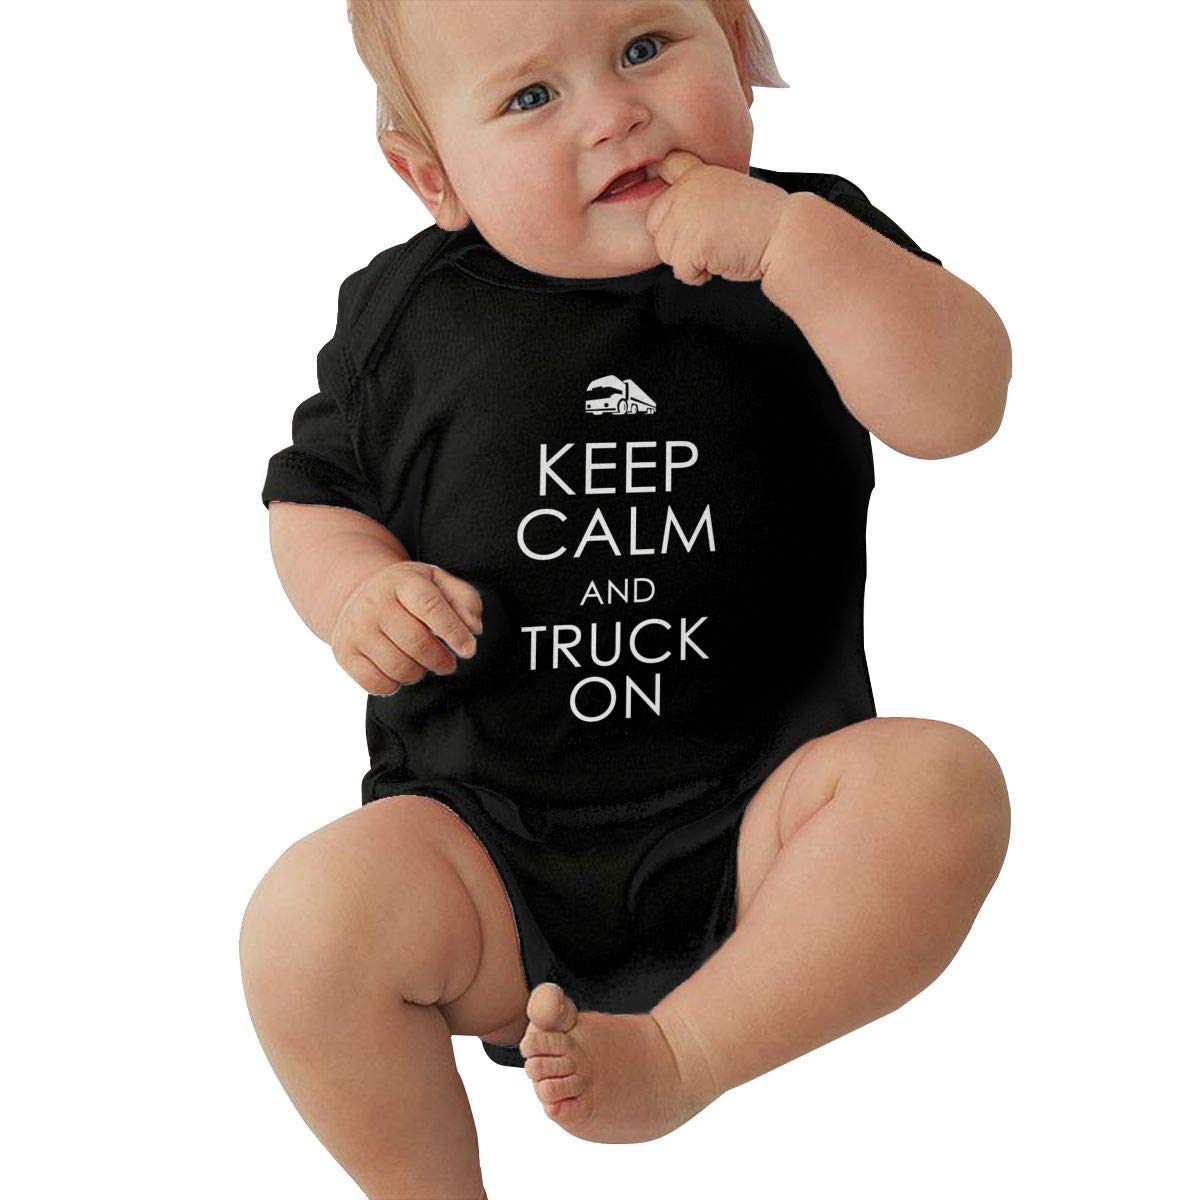 Newborn Baby Girls Bodysuit Short-Sleeve Onesie Keep Calm Truck On Print Jumpsuit